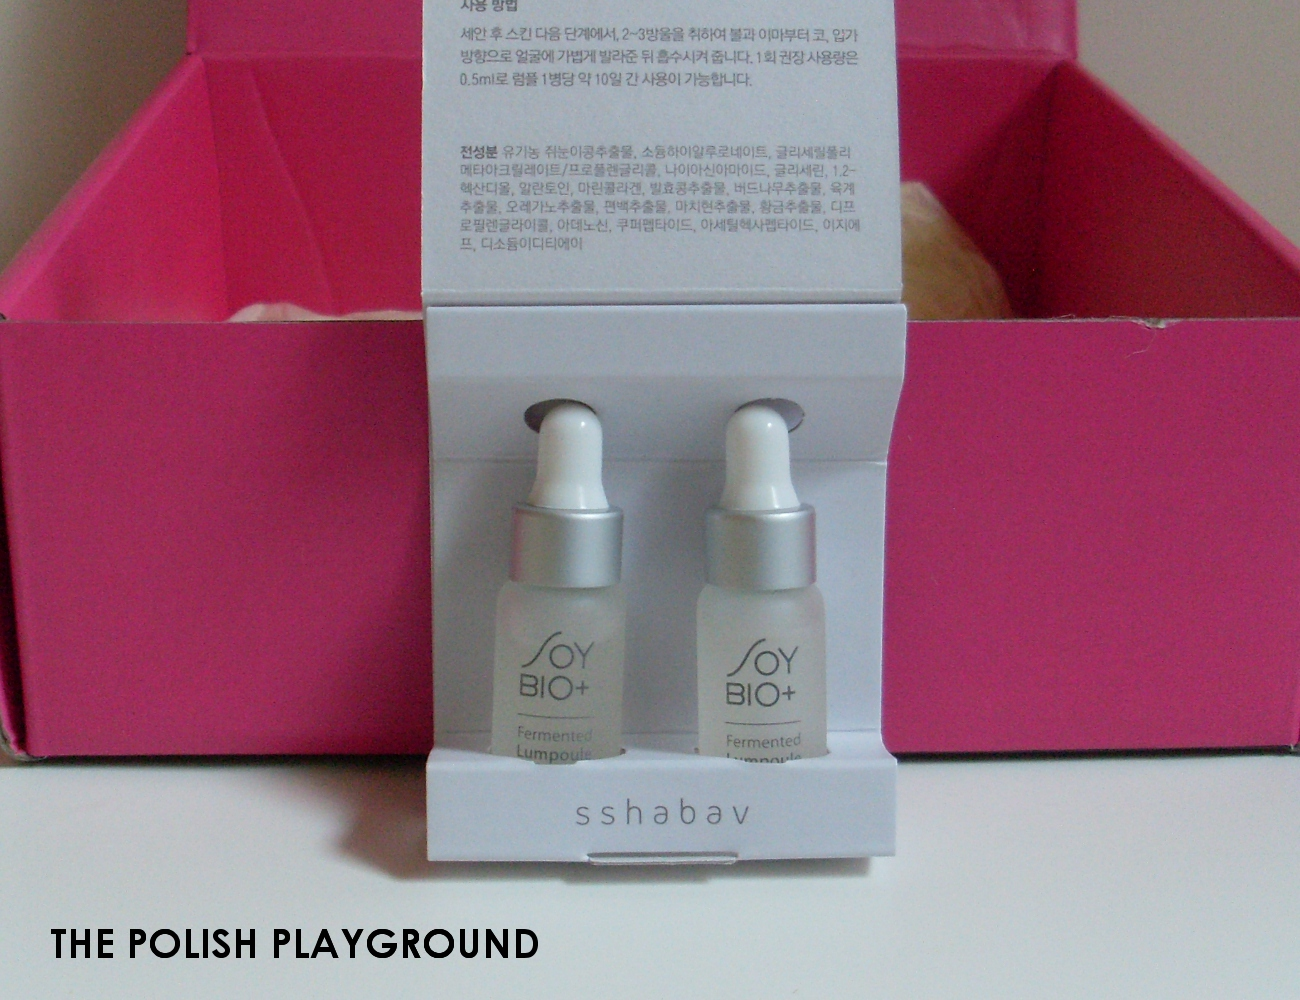 Memebox Luckybox #11 Unboxing - Soy BIO+ Fermented Lumpoule